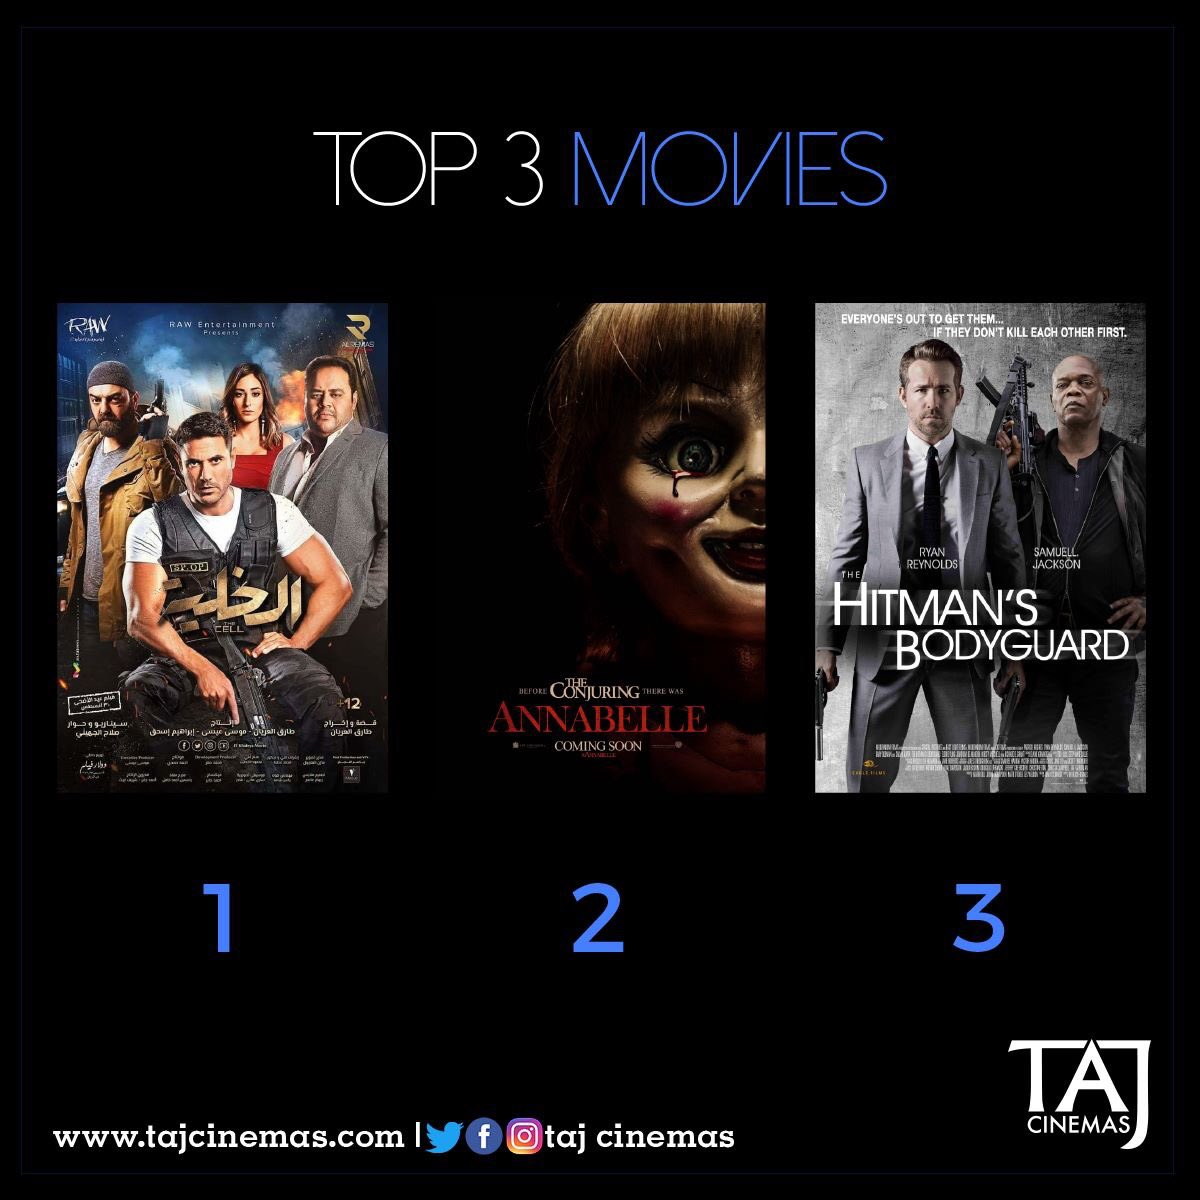 Our TOP 3 at the box office. Don't wait for too long, go watch the movie you want before it's gone! #TAJCinemas #Movies #Jo #Amman https://t.co/gXcY898FEn